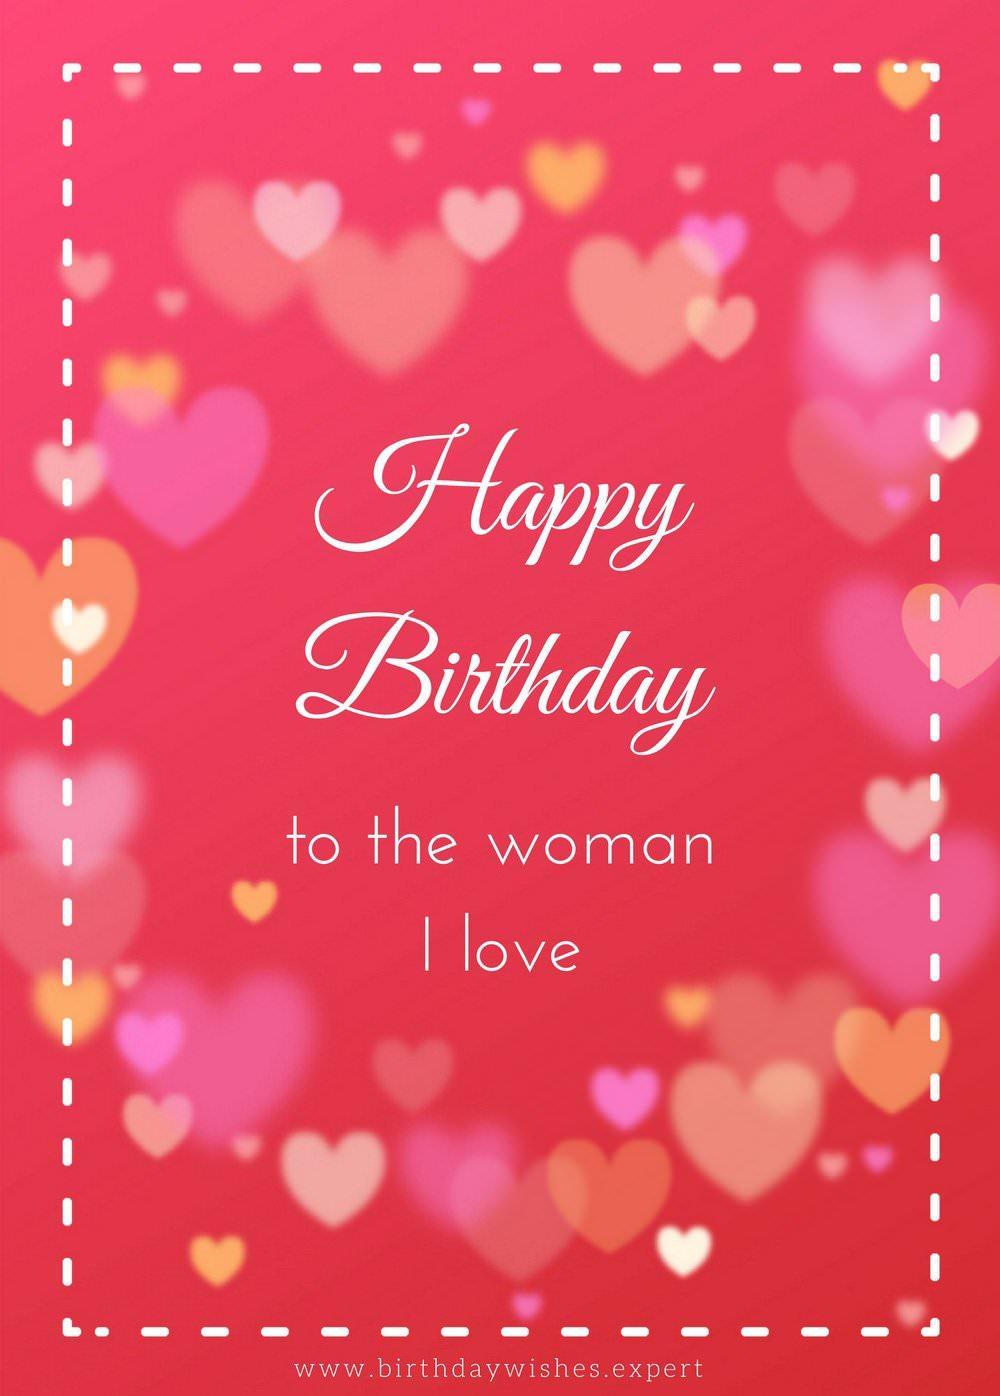 To The Woman I Love Wife Birthday Wishes